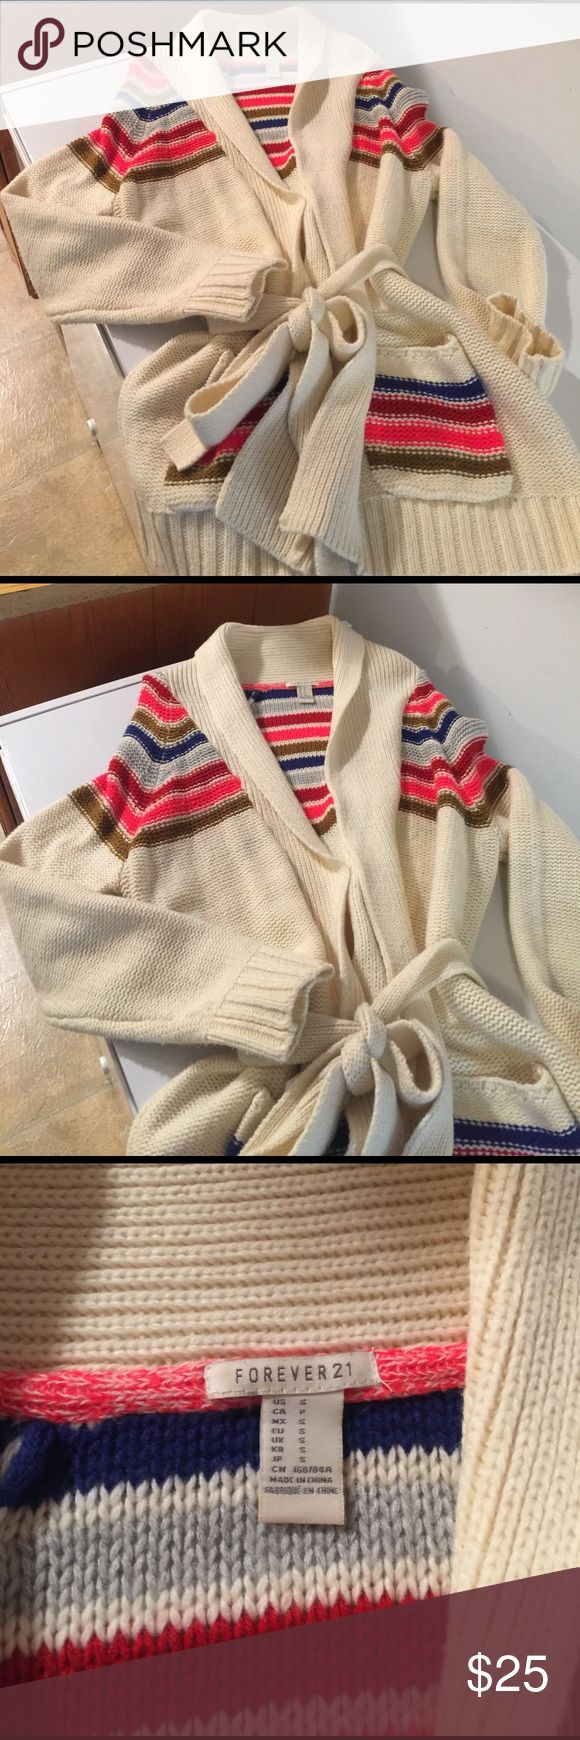 Forever21 Belted Cardigan Sweater Very cute and Cozy, Multi-Colored very pretty 😍 Forever 21 Sweaters Cardigans